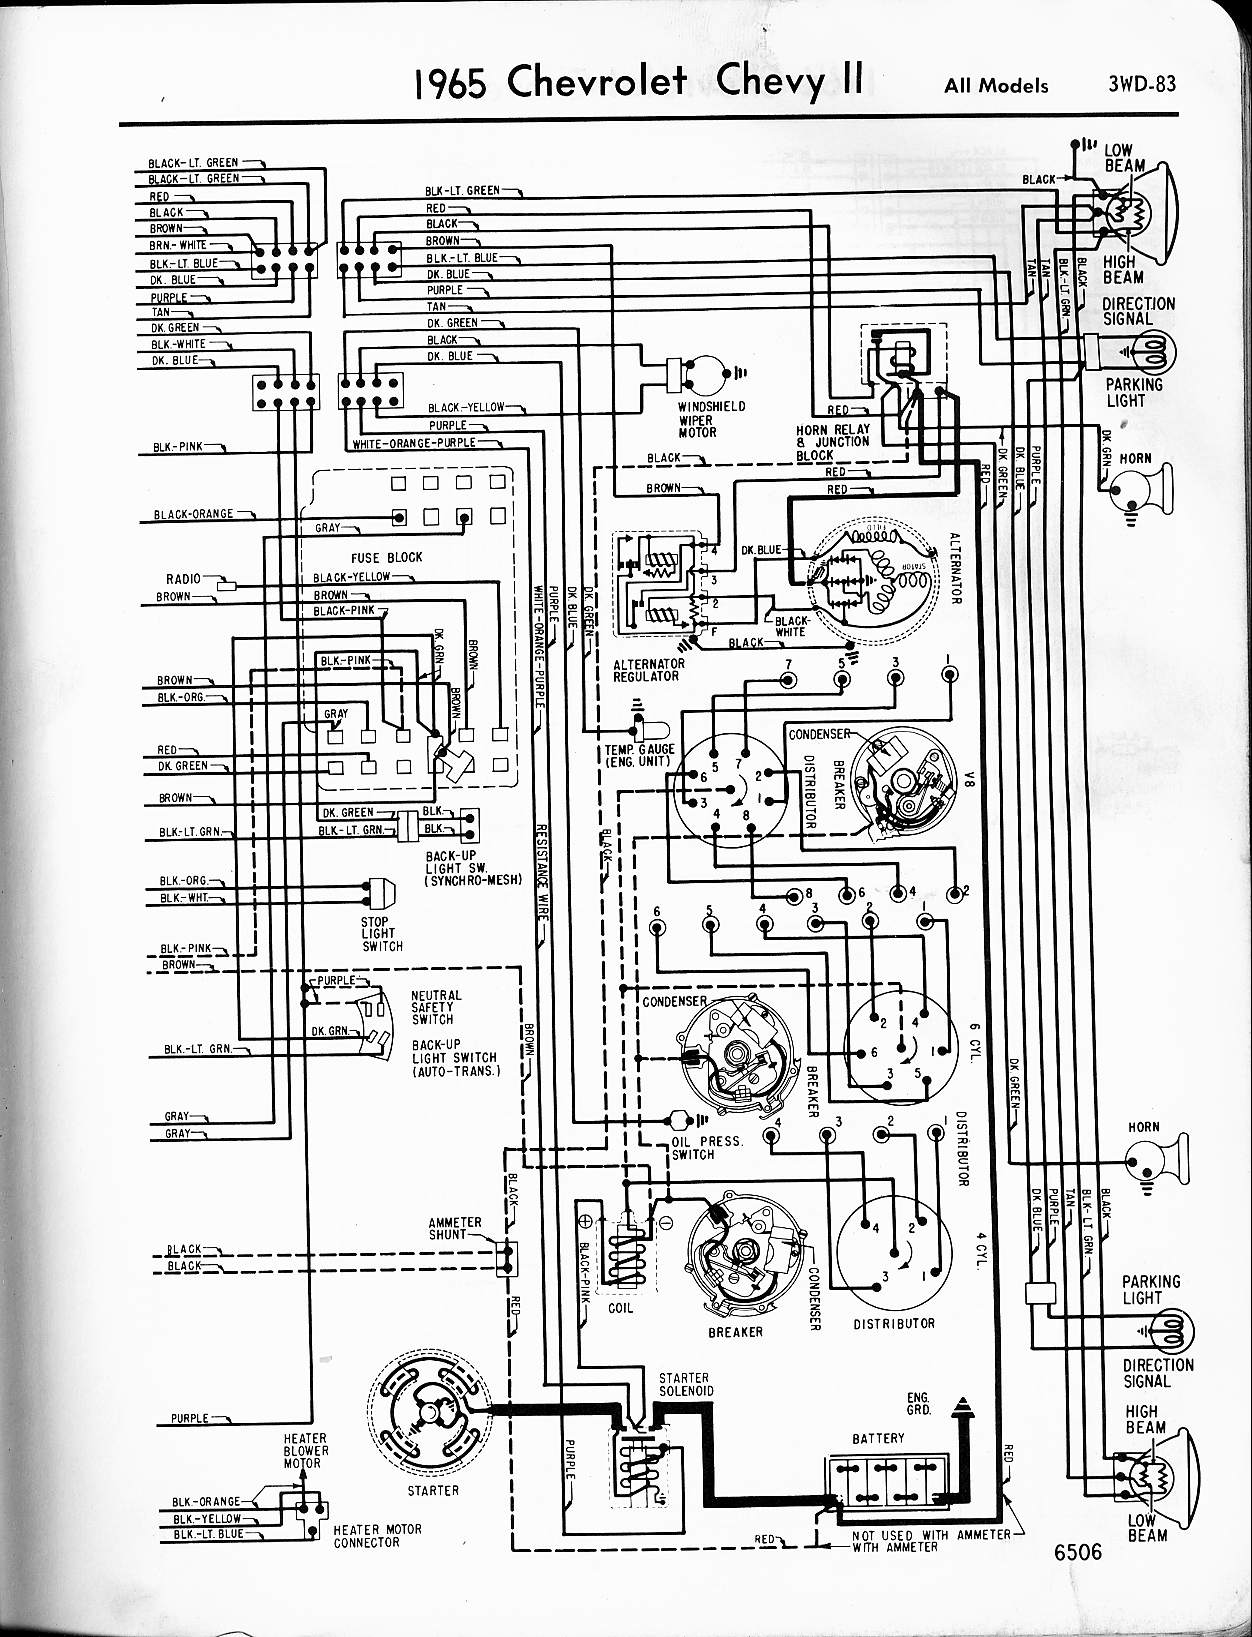 MWireChev65_3WD 083 chevy diagrams 64 falcon wiring diagram at bakdesigns.co